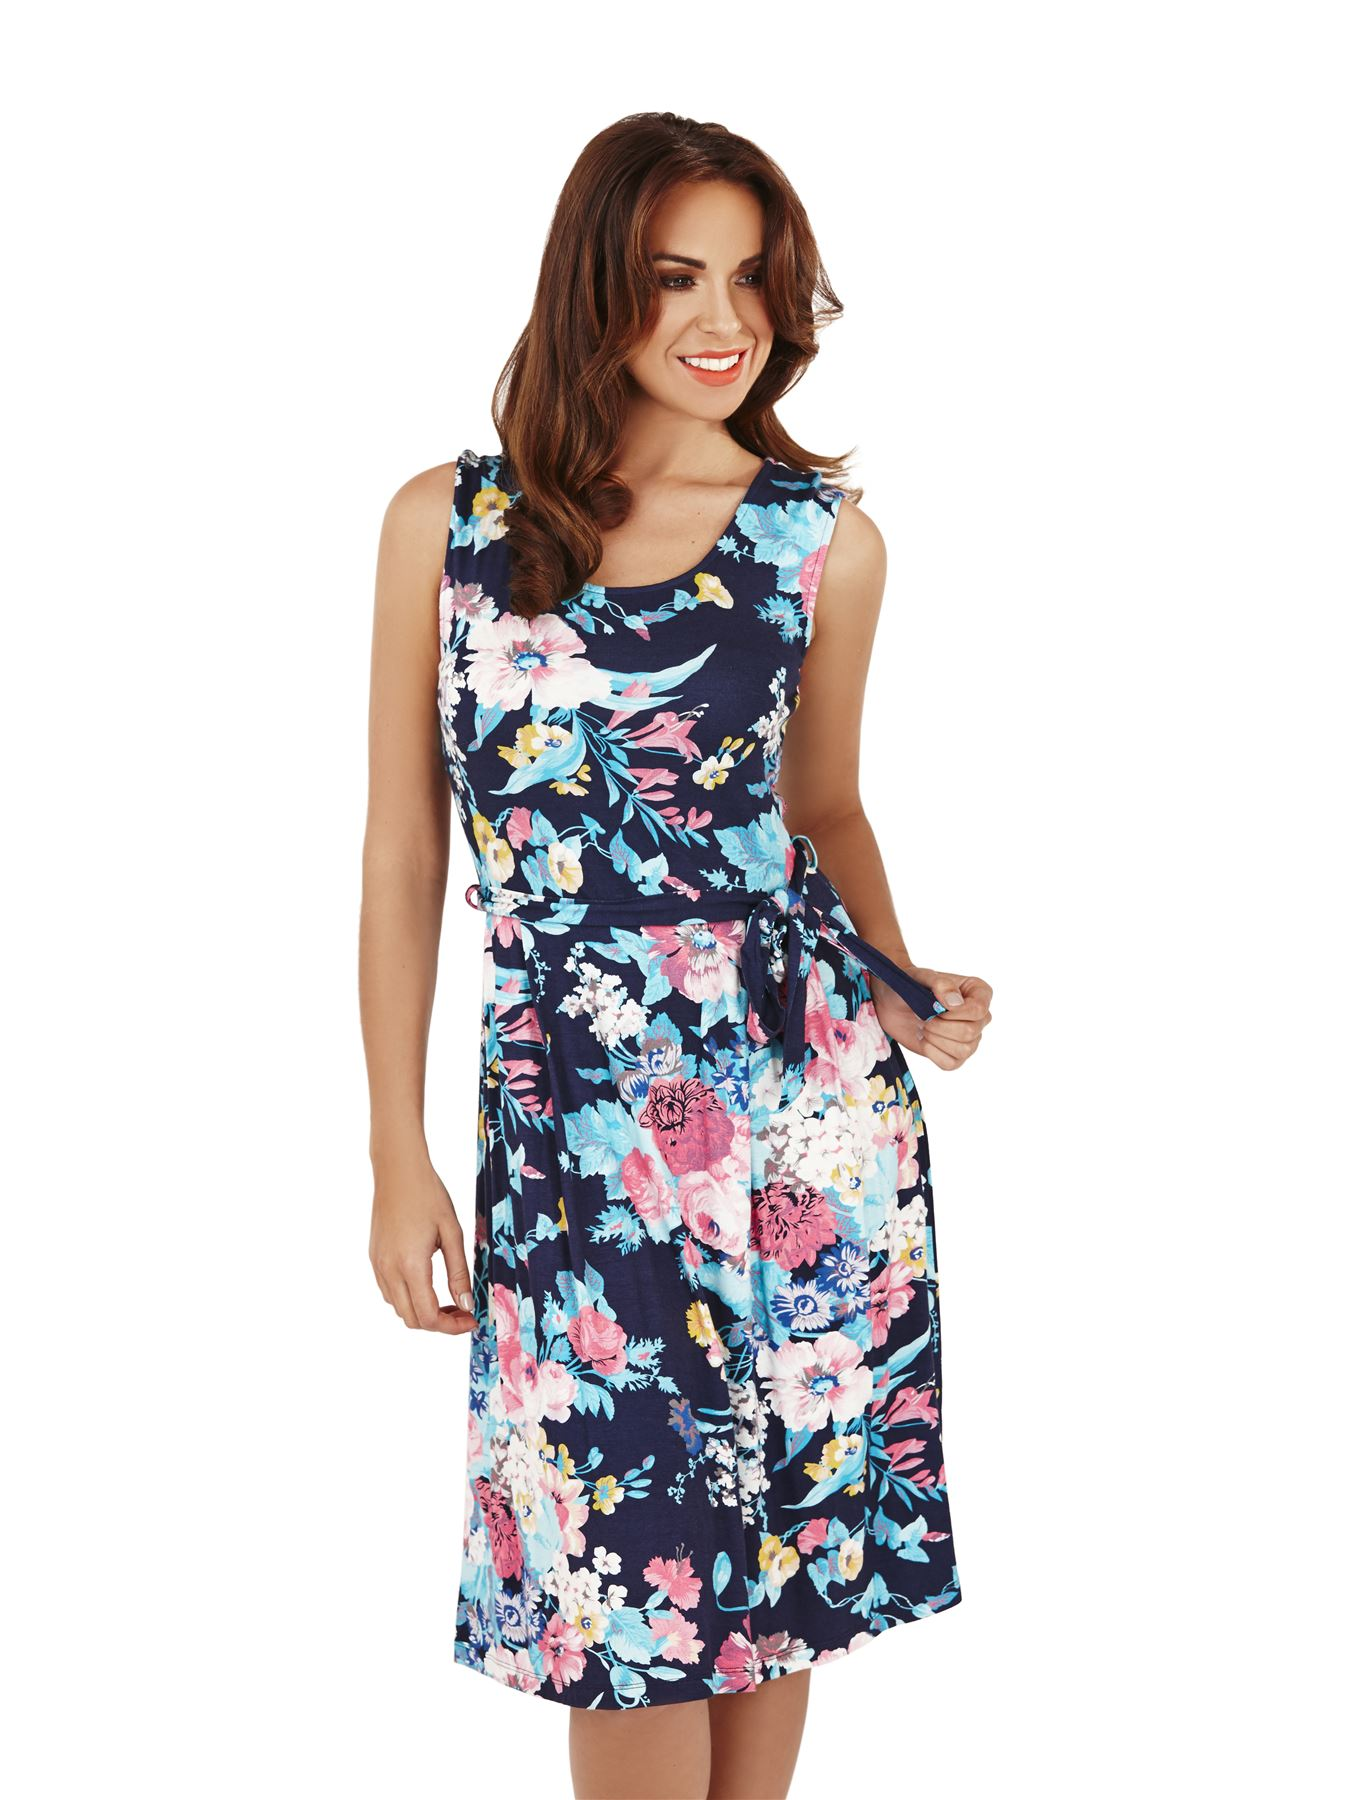 Ladies floral midi knee length party prom evening summer dress ebay